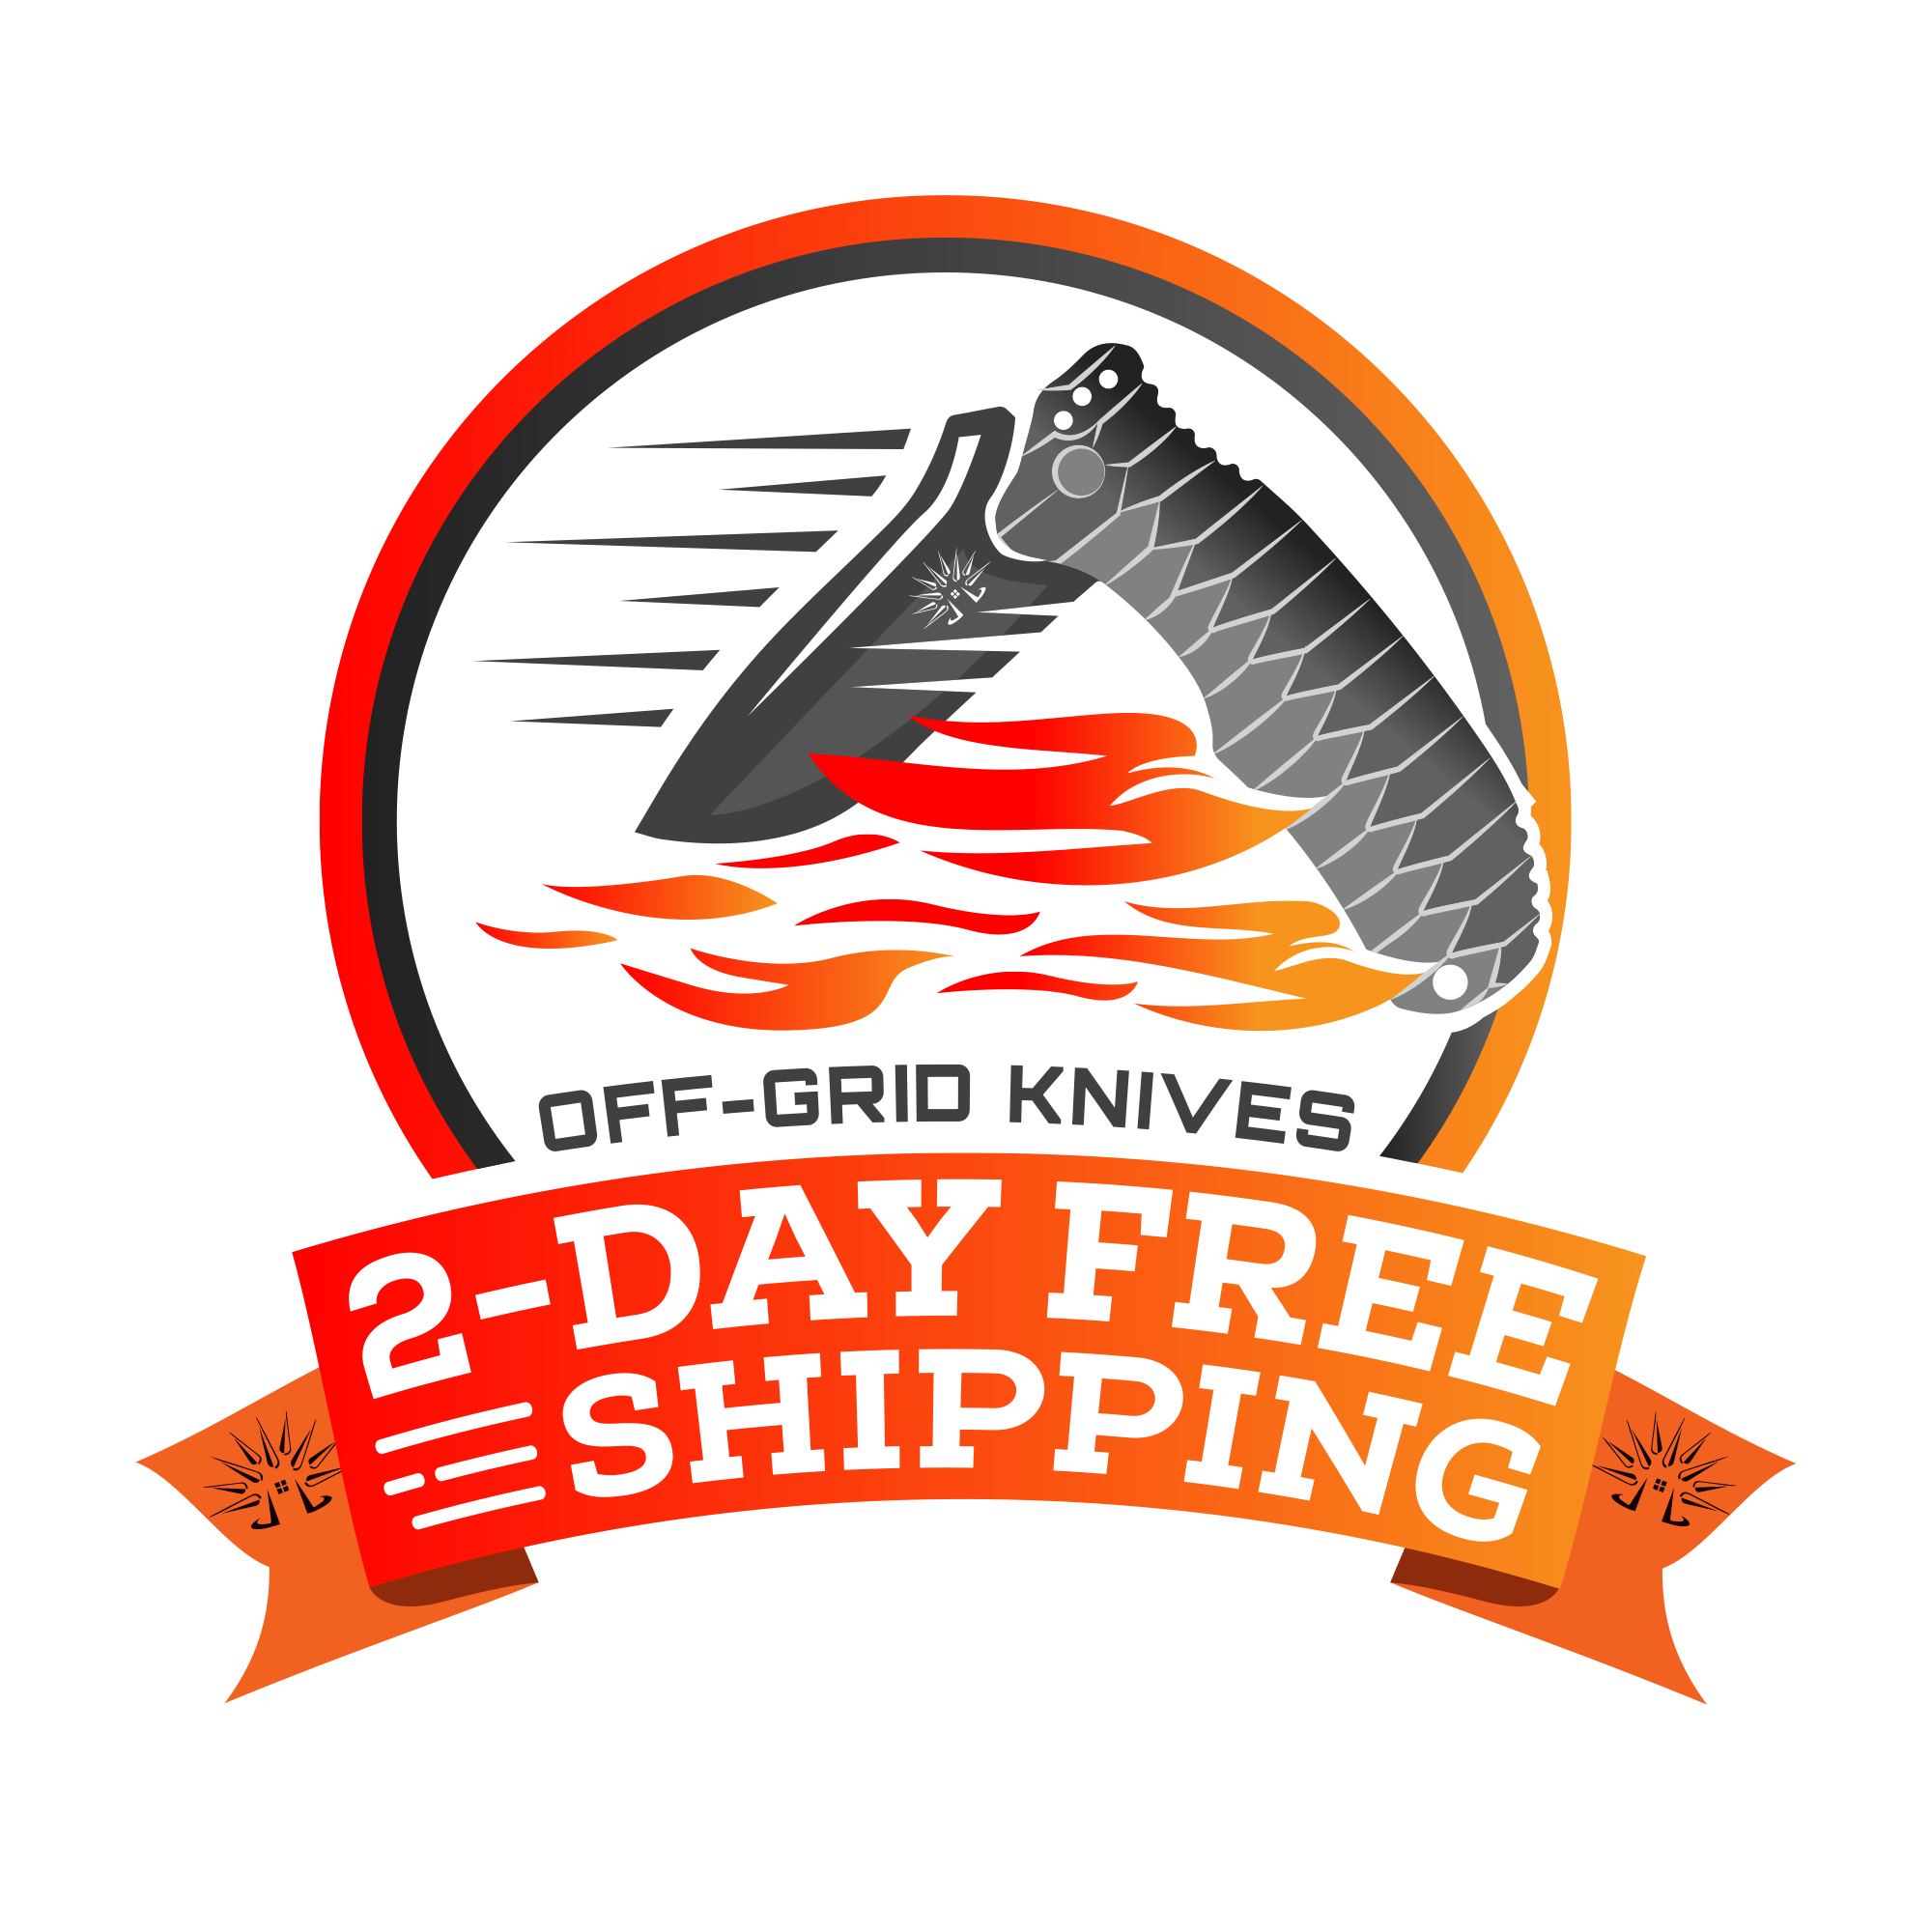 off-grid-knives-2-day-free-shipping-logo-on-white-background.png